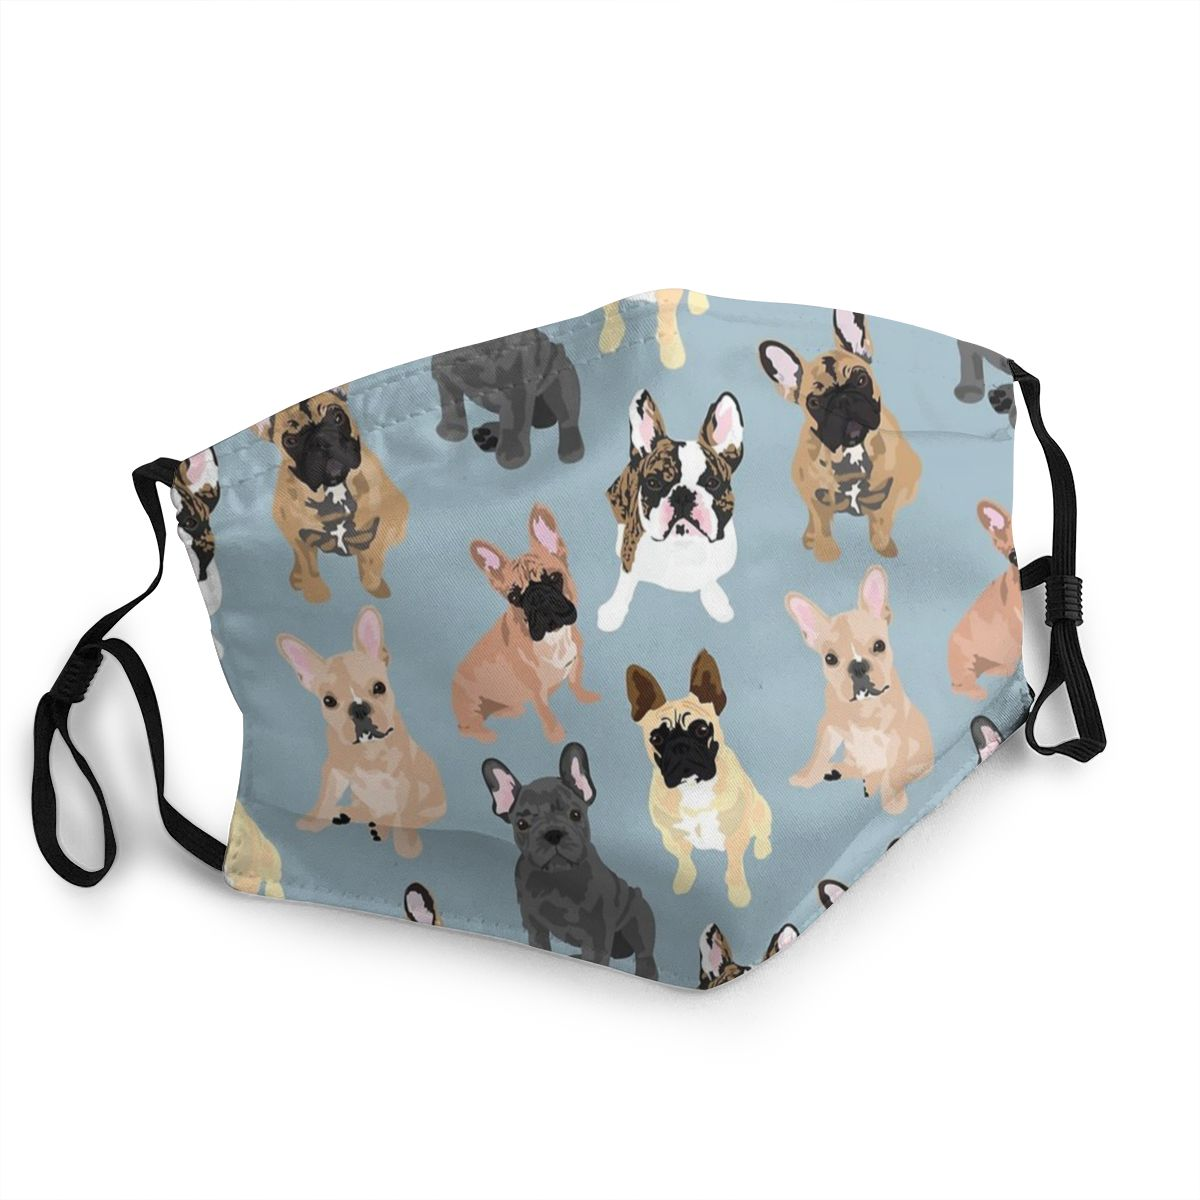 French Bulldogs Non-Disposable Mouth Face Mask Love Puppy Animal Pet Anti Haze Dust Protection Cover Respirator